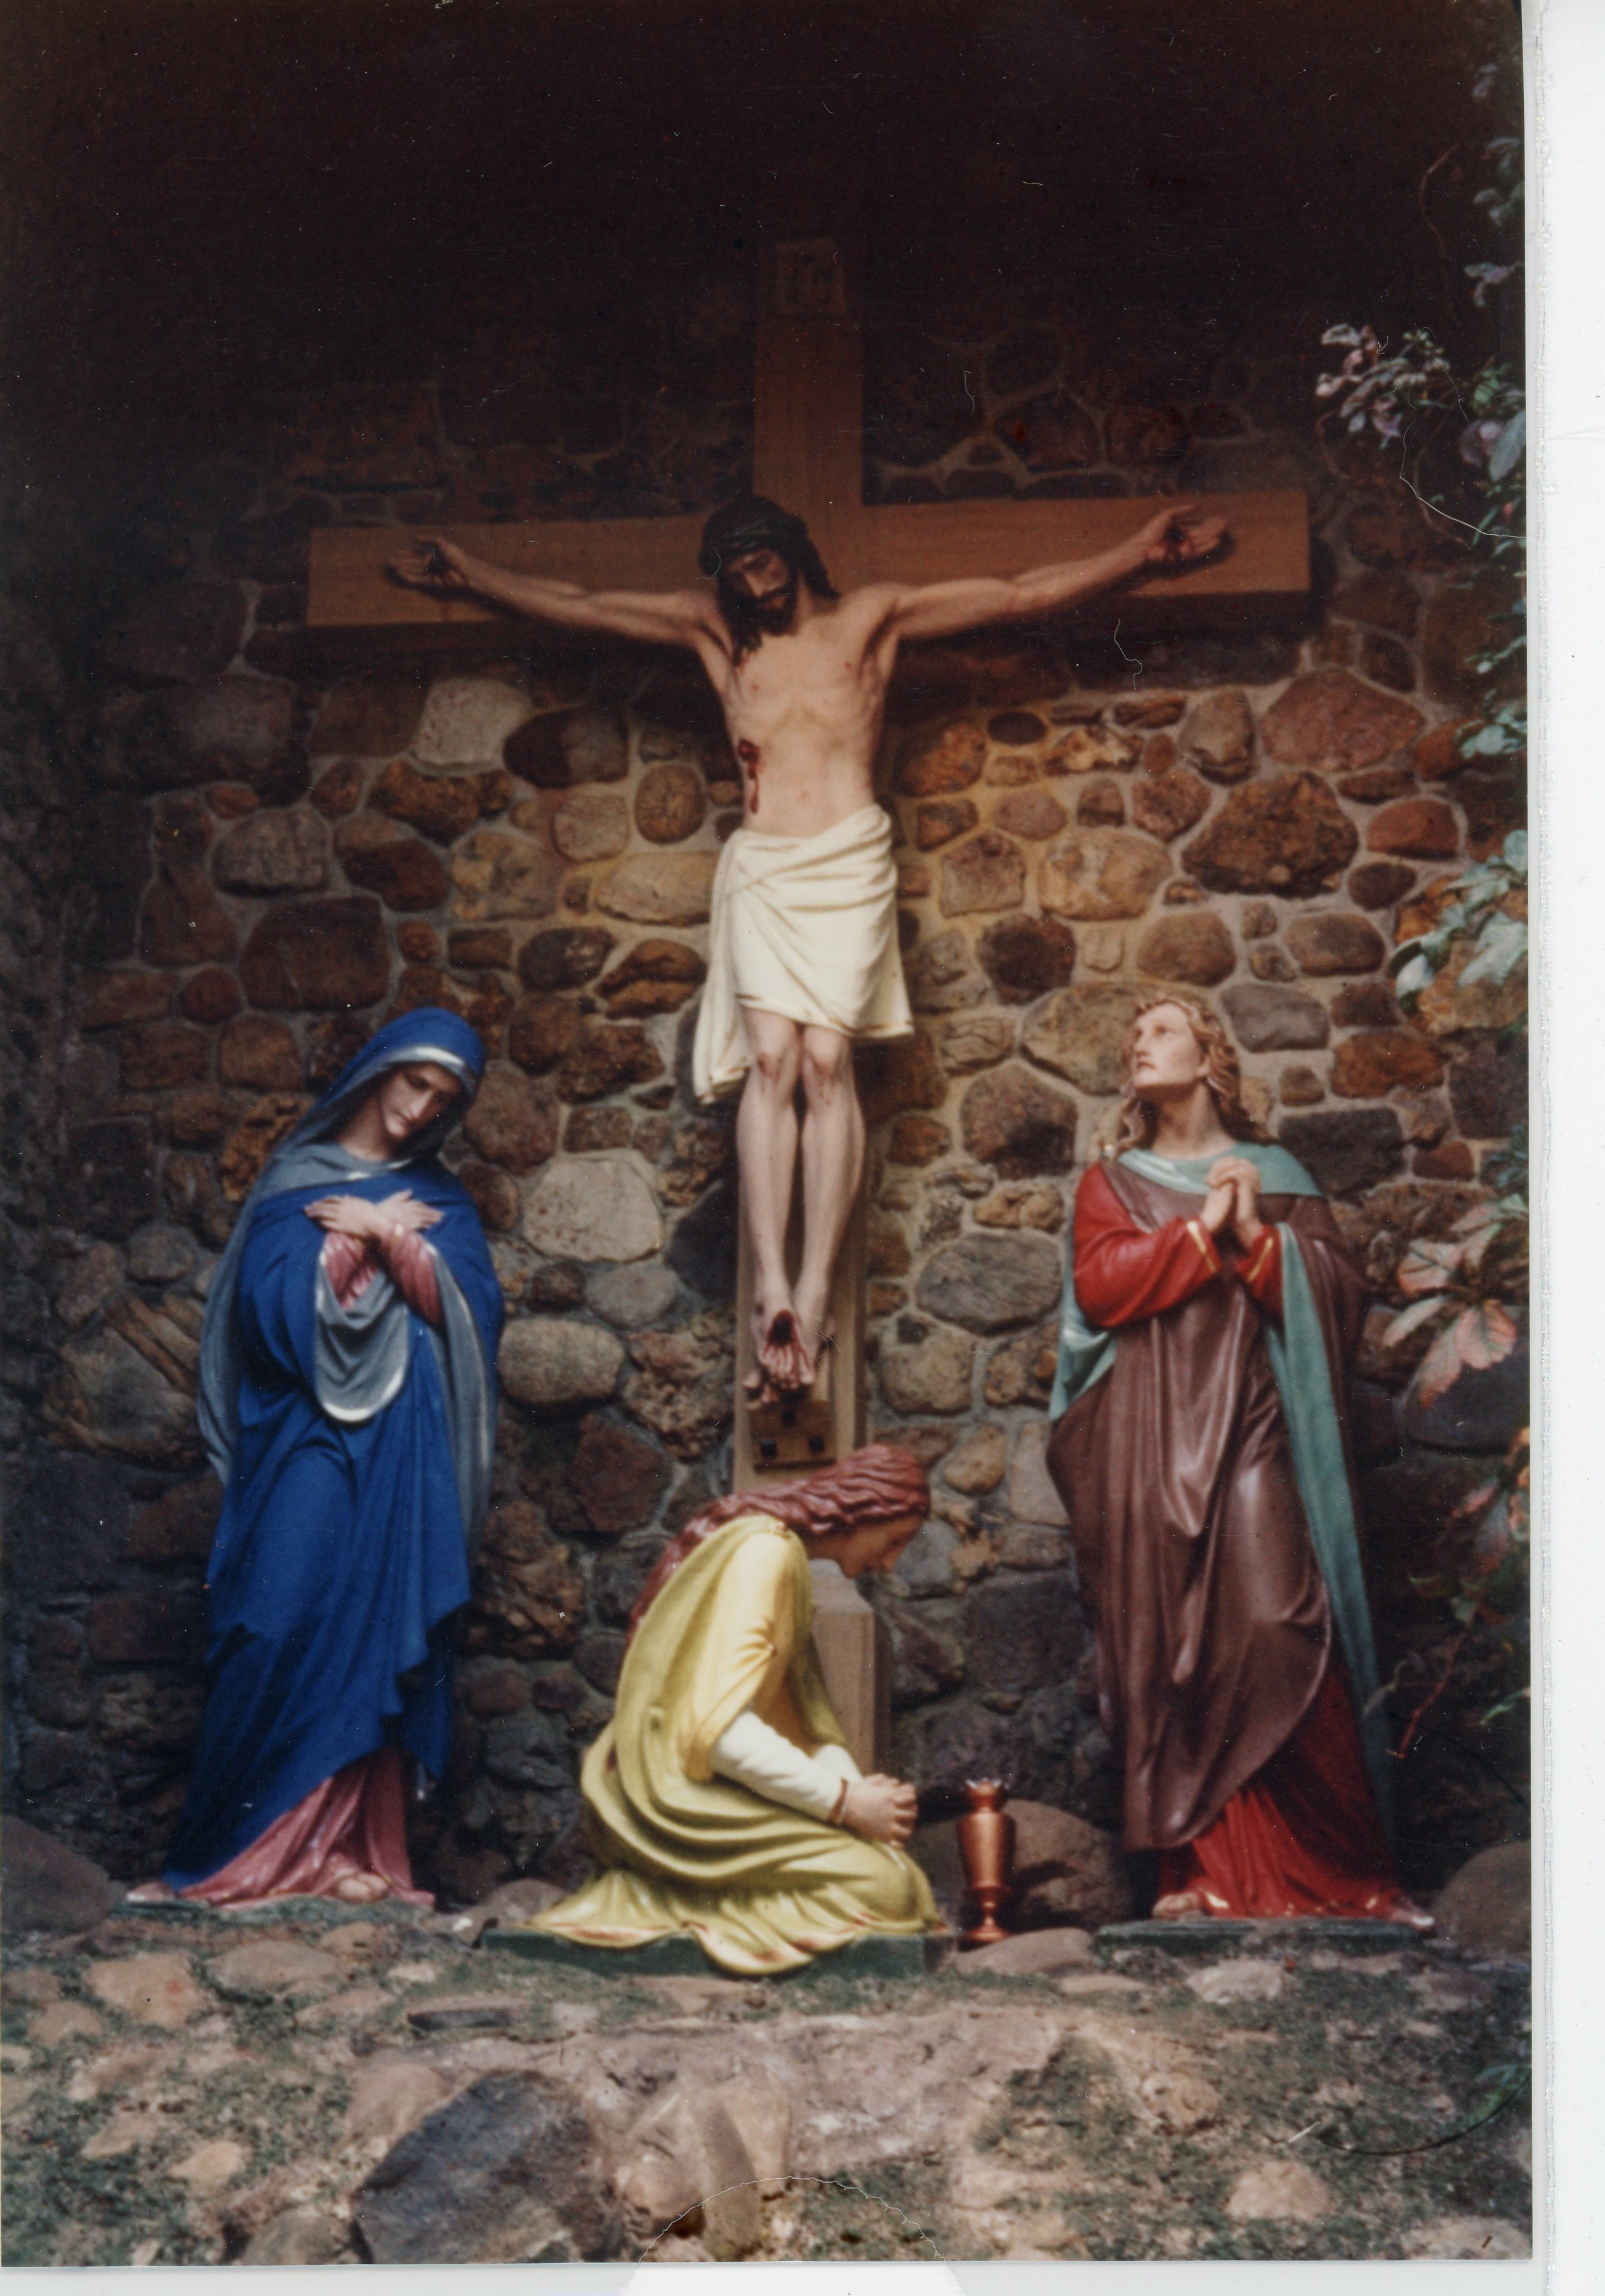 Image of religious statues in Grotto at St. Michael's Mission